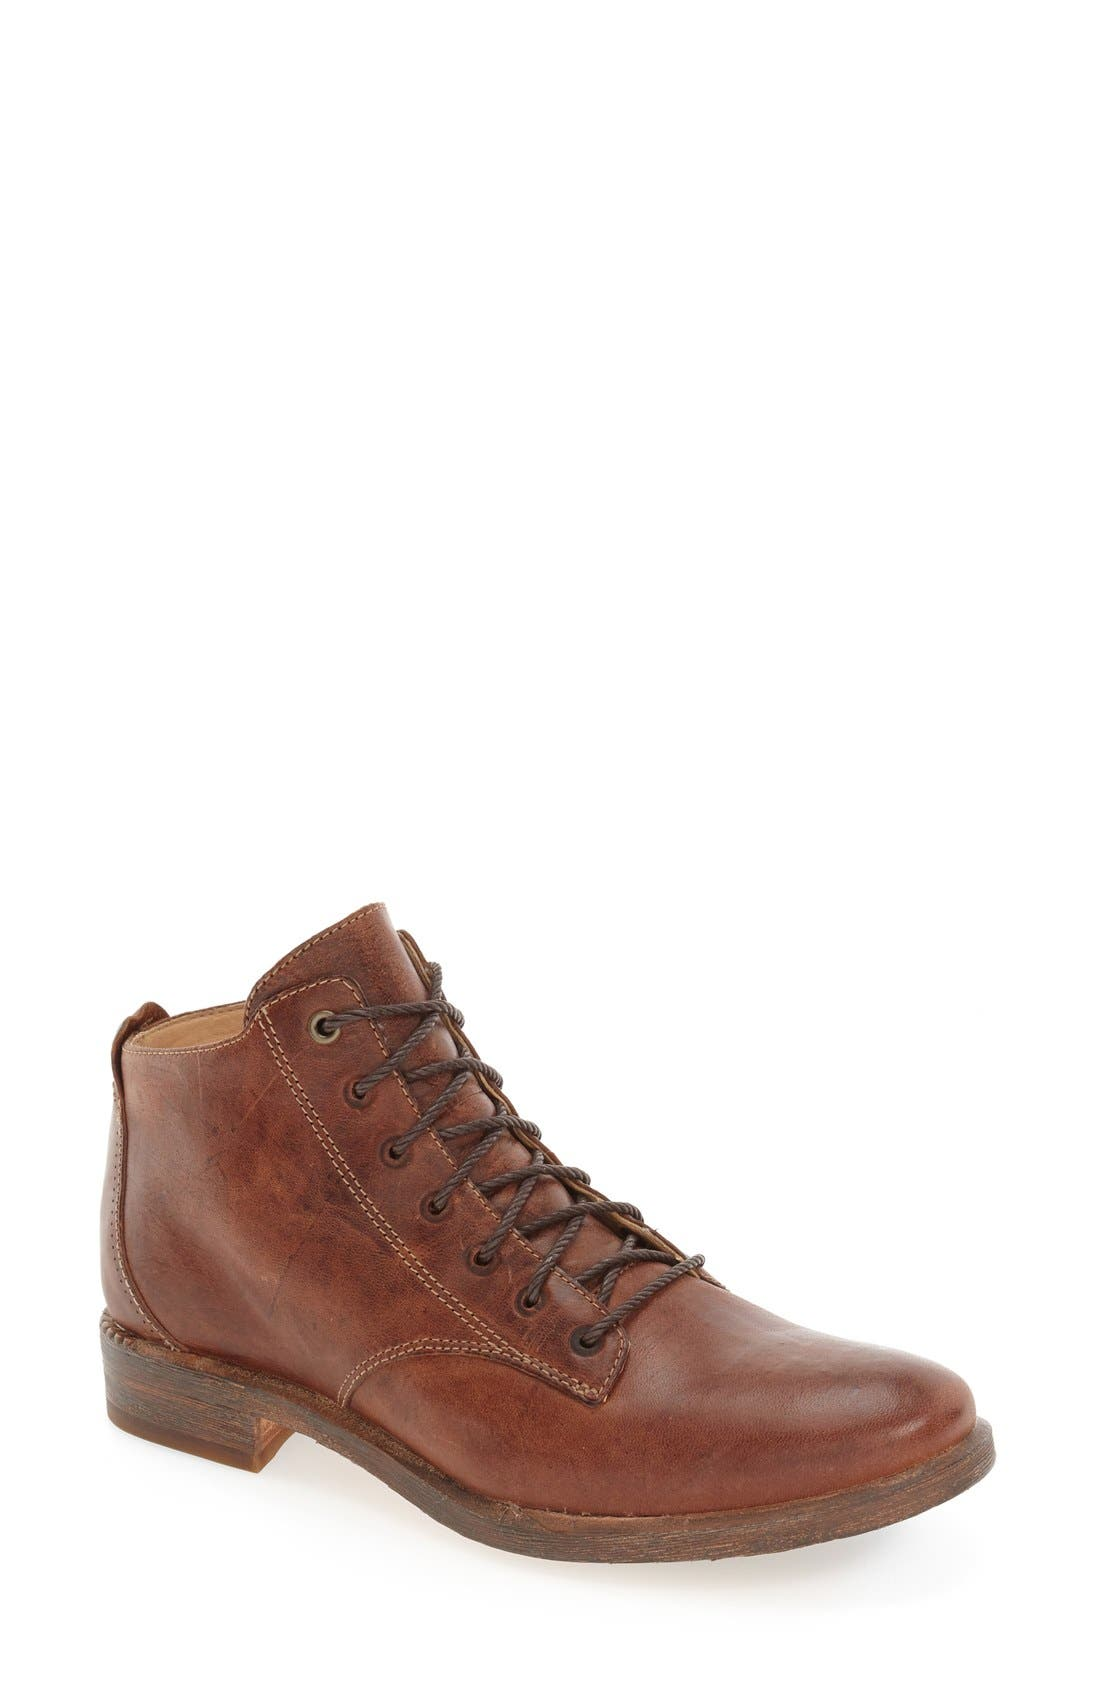 Alternate Image 1 Selected - Timberland 'Lucille' Lace-Up Bootie (Women)